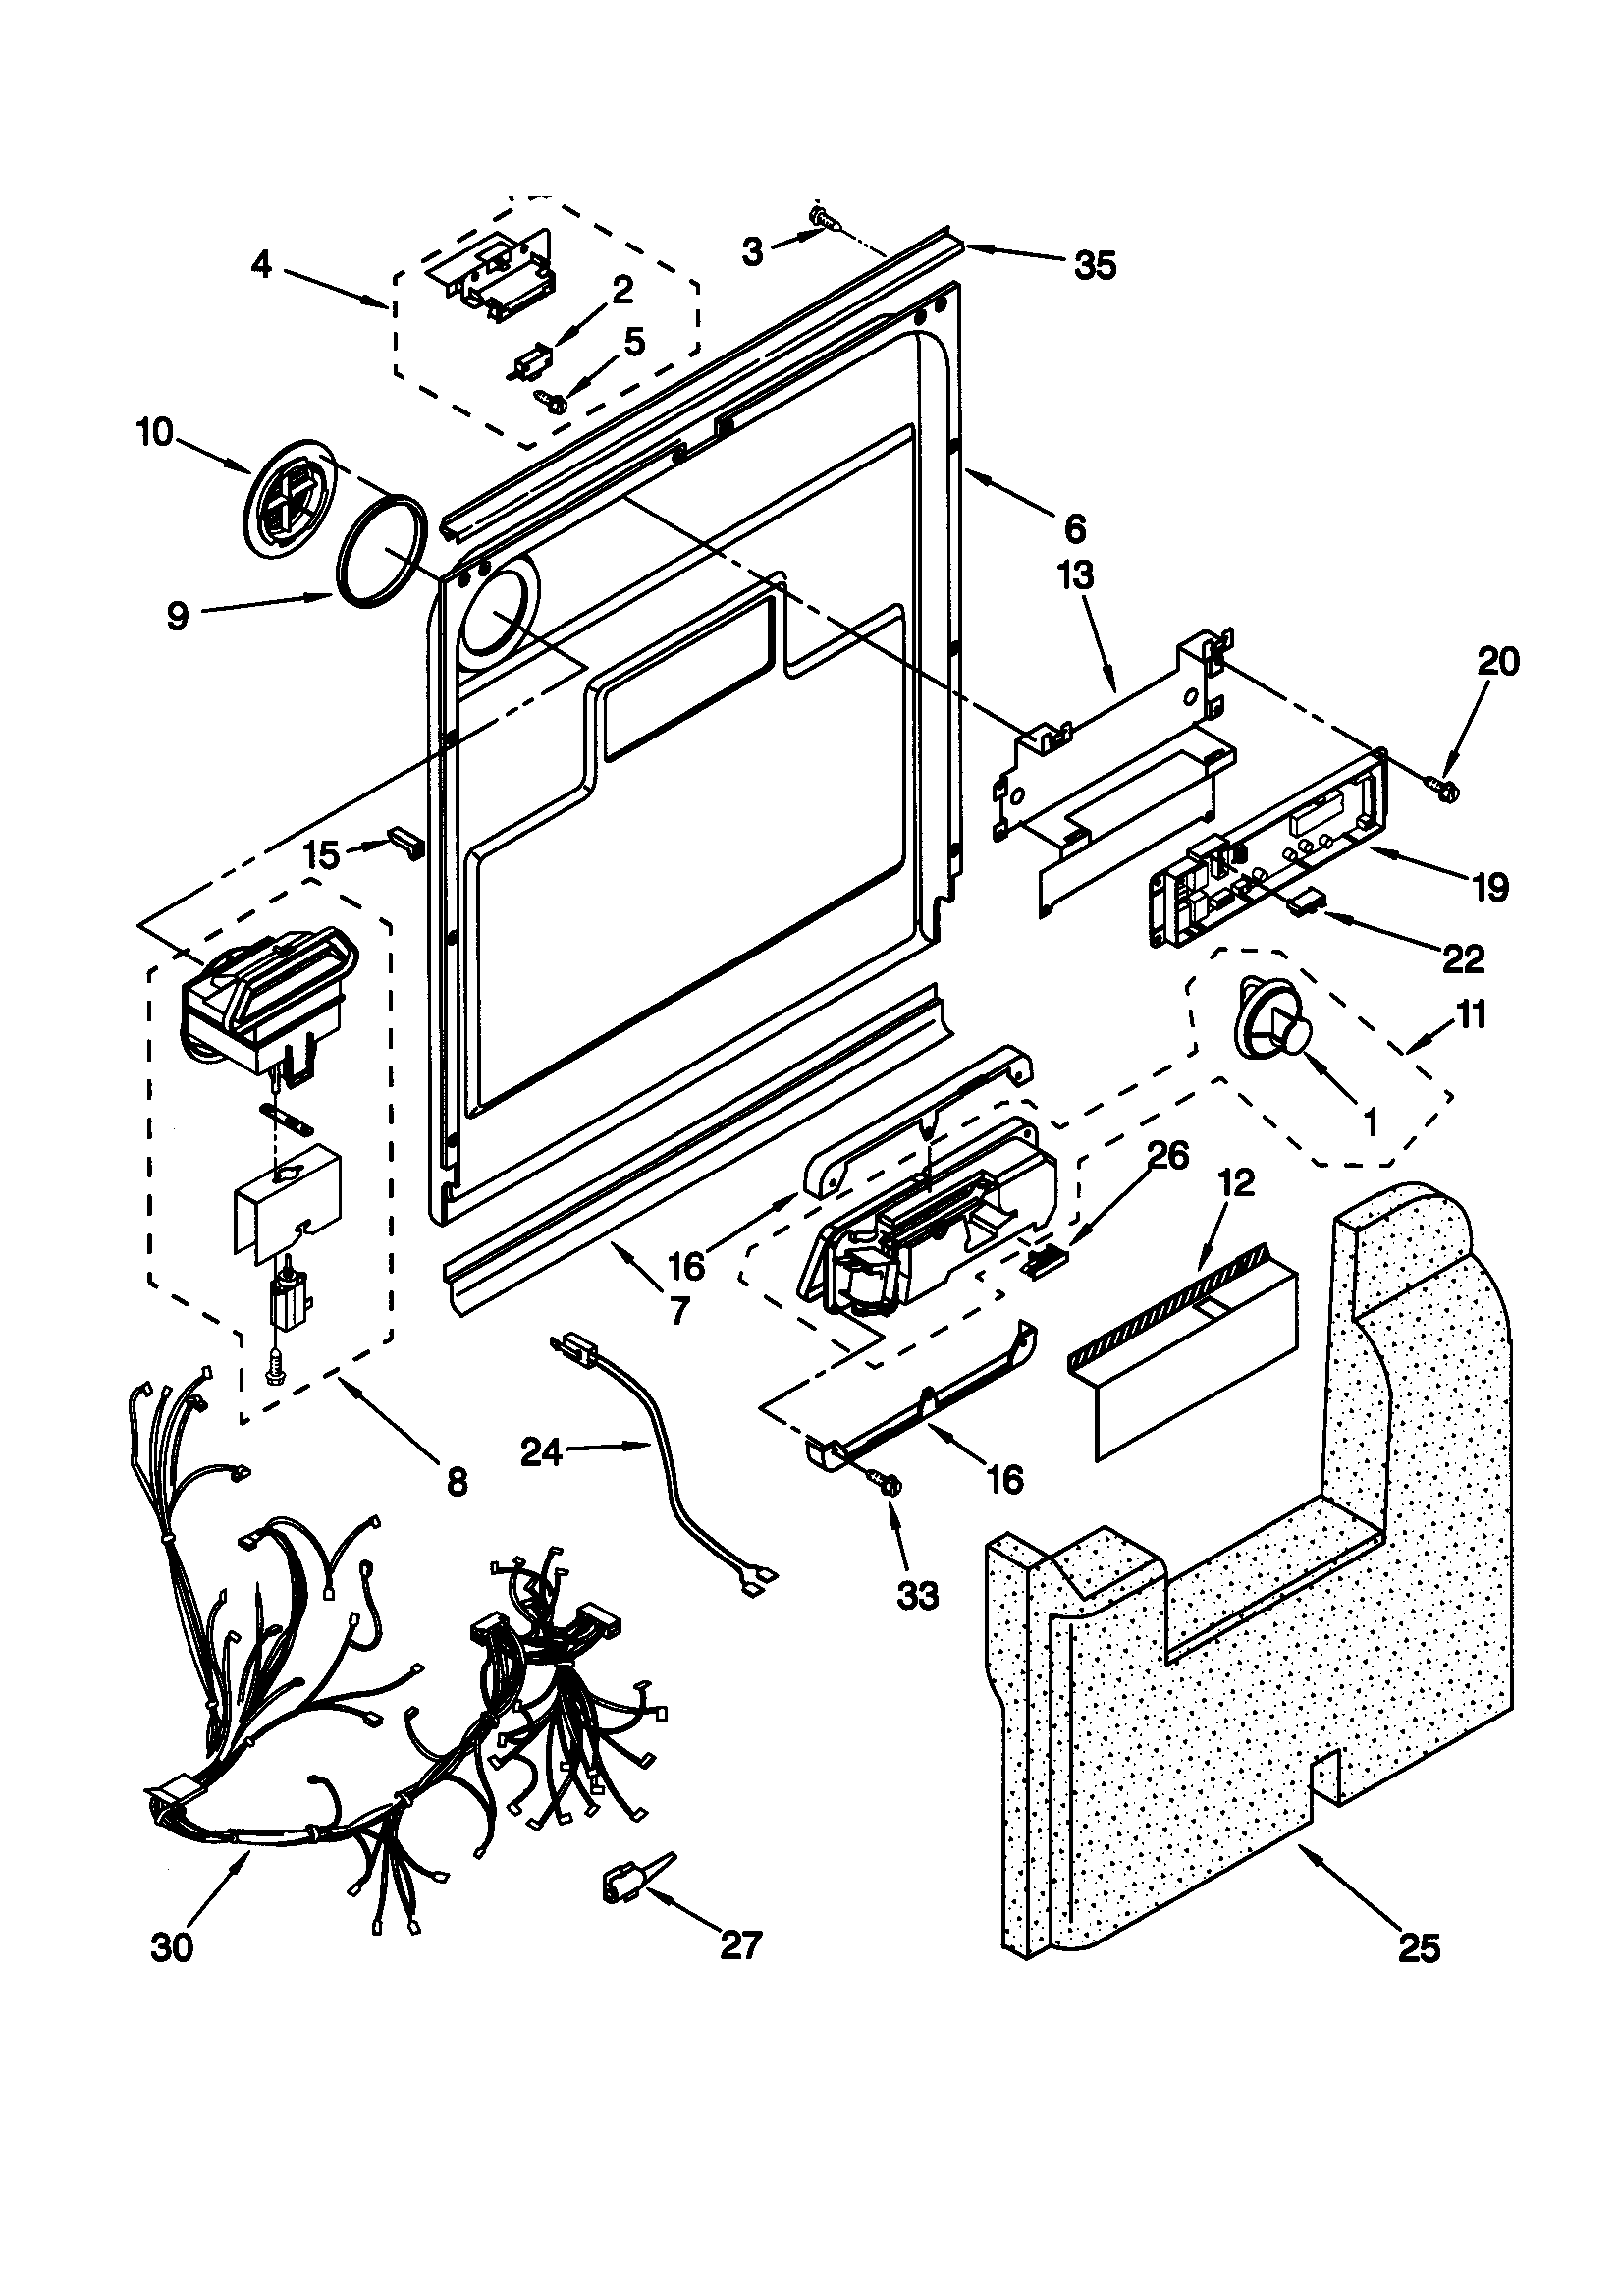 Kenmore Dishwasher Wiring Diagram Guide And Troubleshooting Of For Elite Electric Dryer Schematic Third Level Rh 5 17 11 Jacobwinterstein Com Ultra Wash